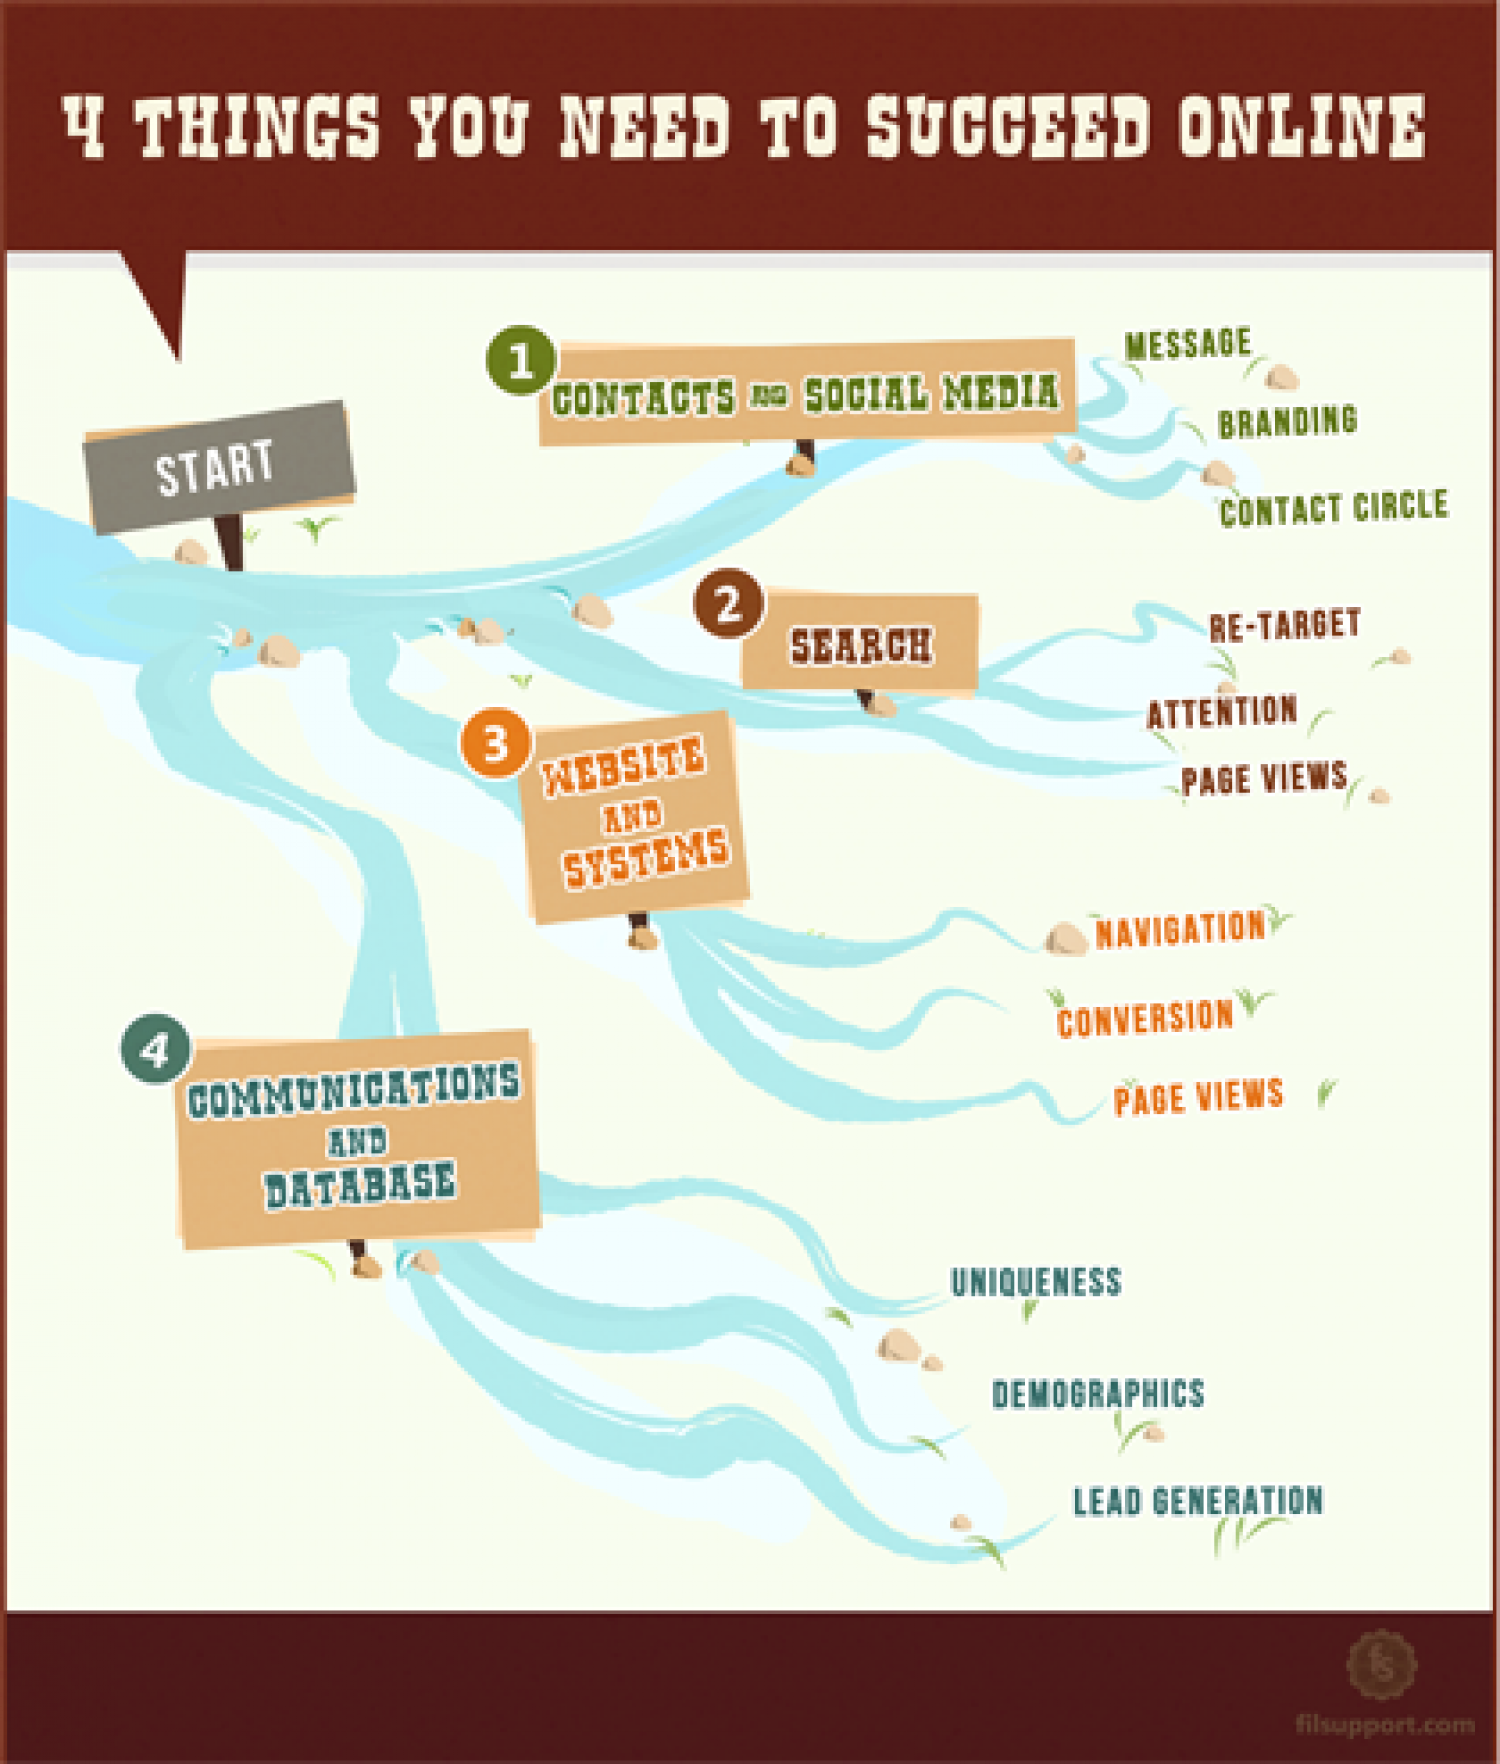 How to Run a Successful Online Business Infographic